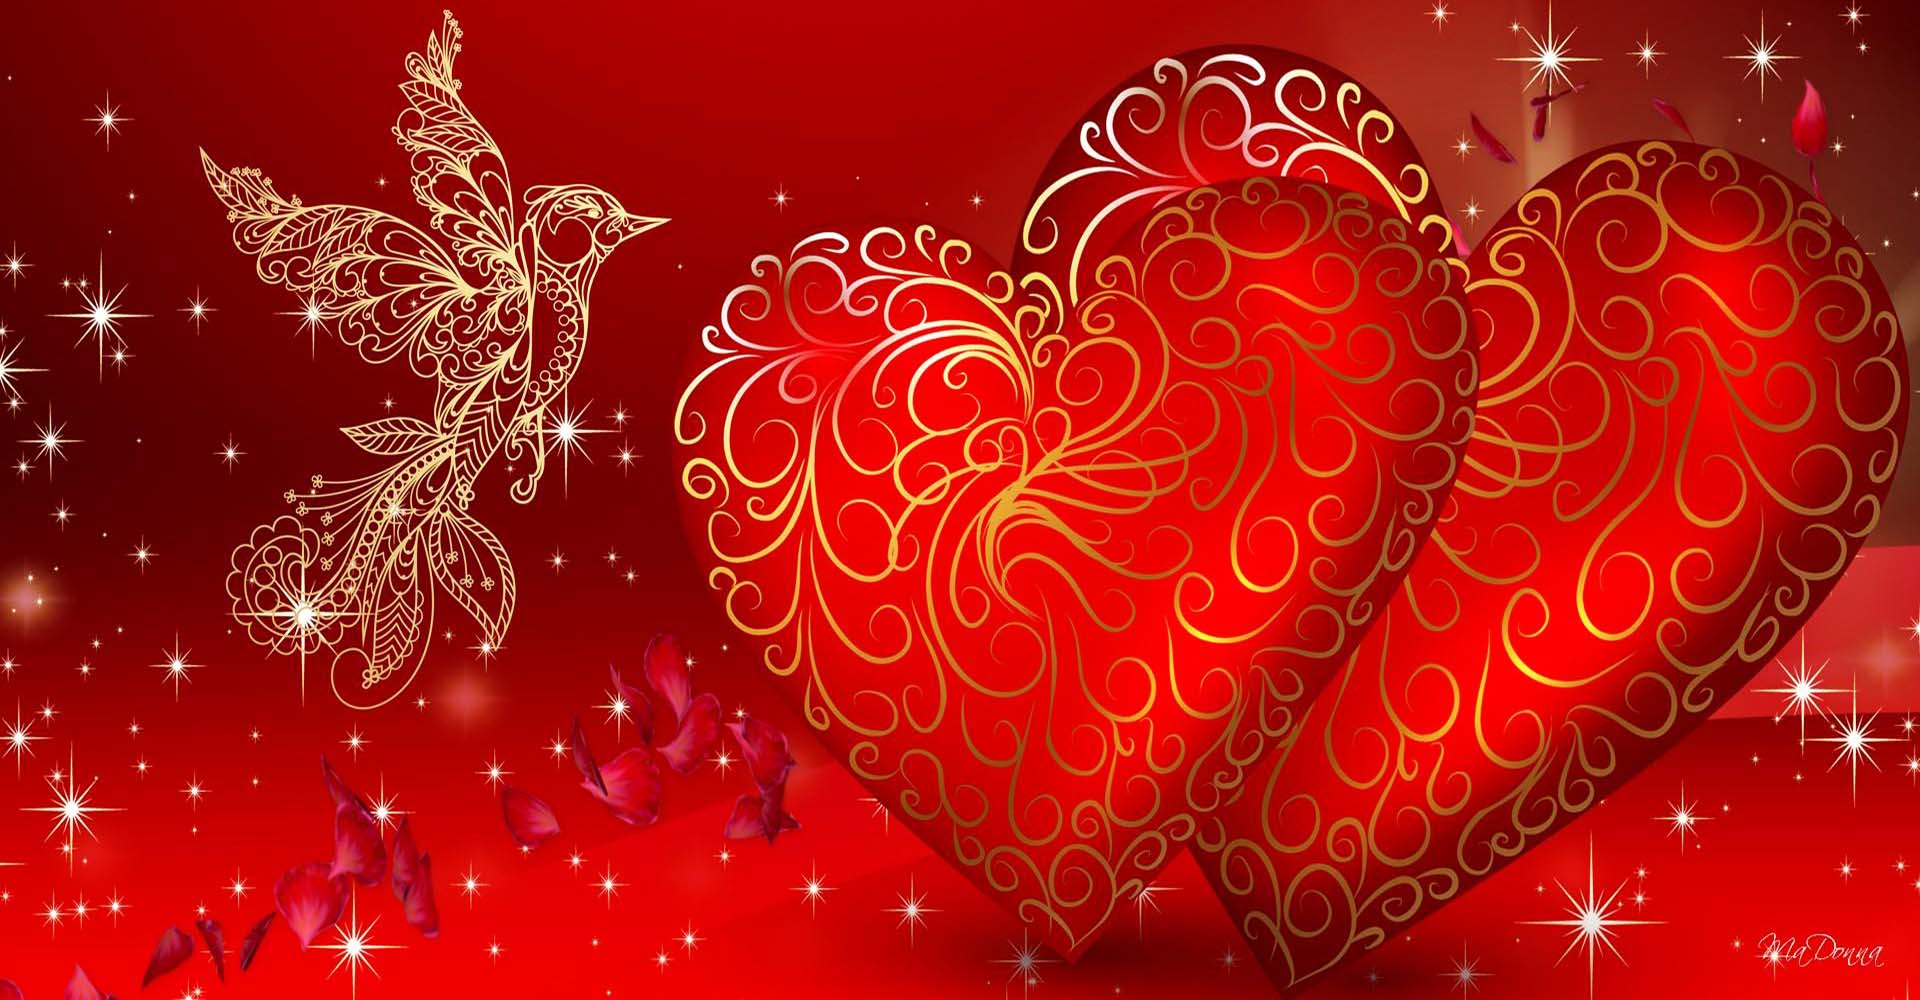 Love Wallpapers Full Hd : Love Heart Wallpapers 2016 - Wallpaper cave